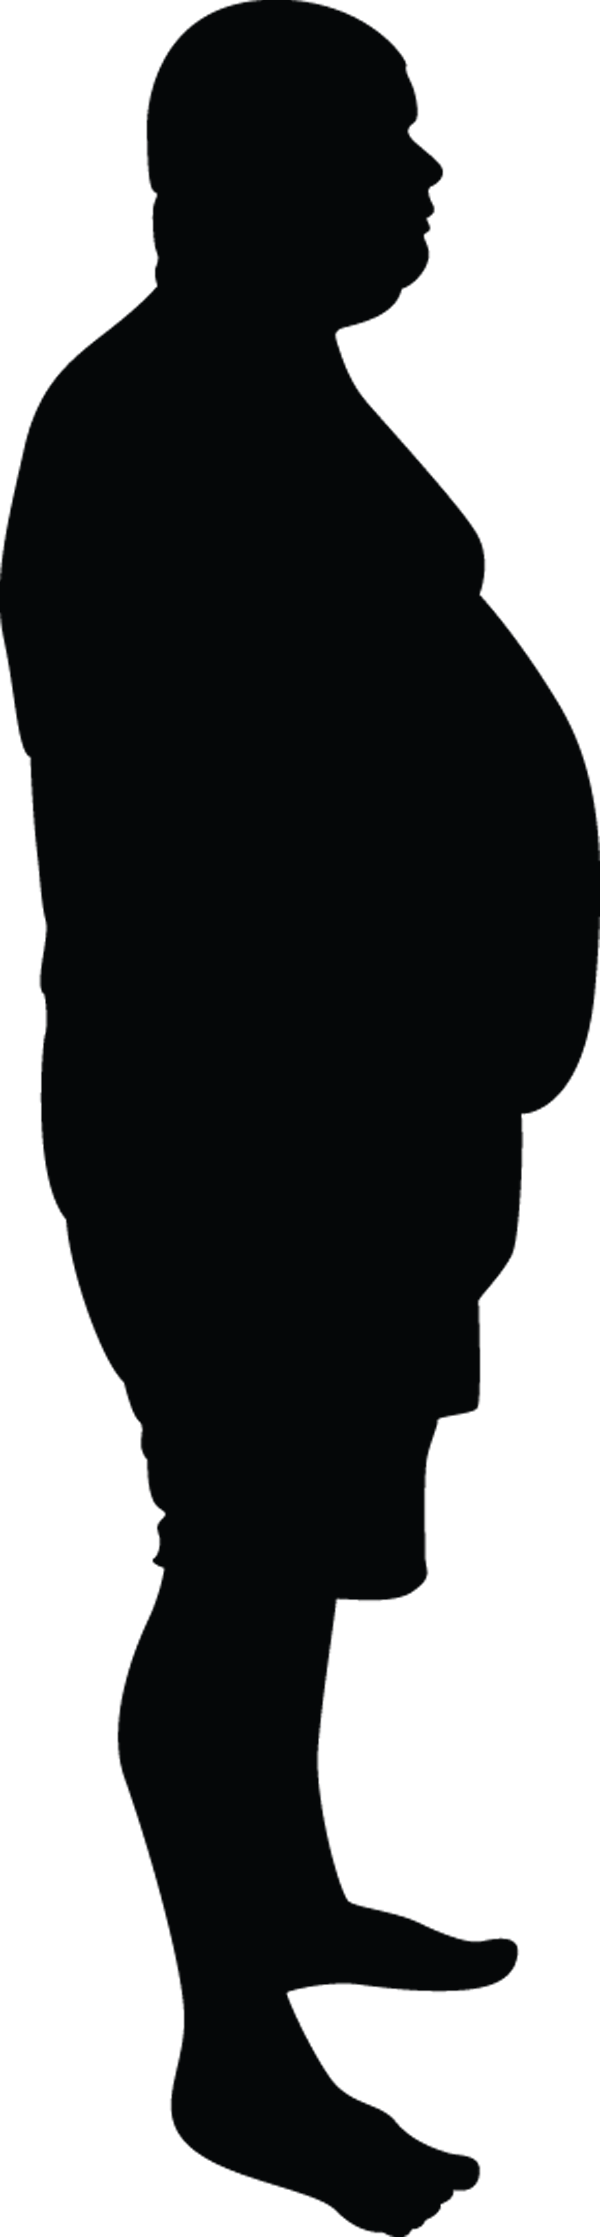 Fat Man Standing Silhouette